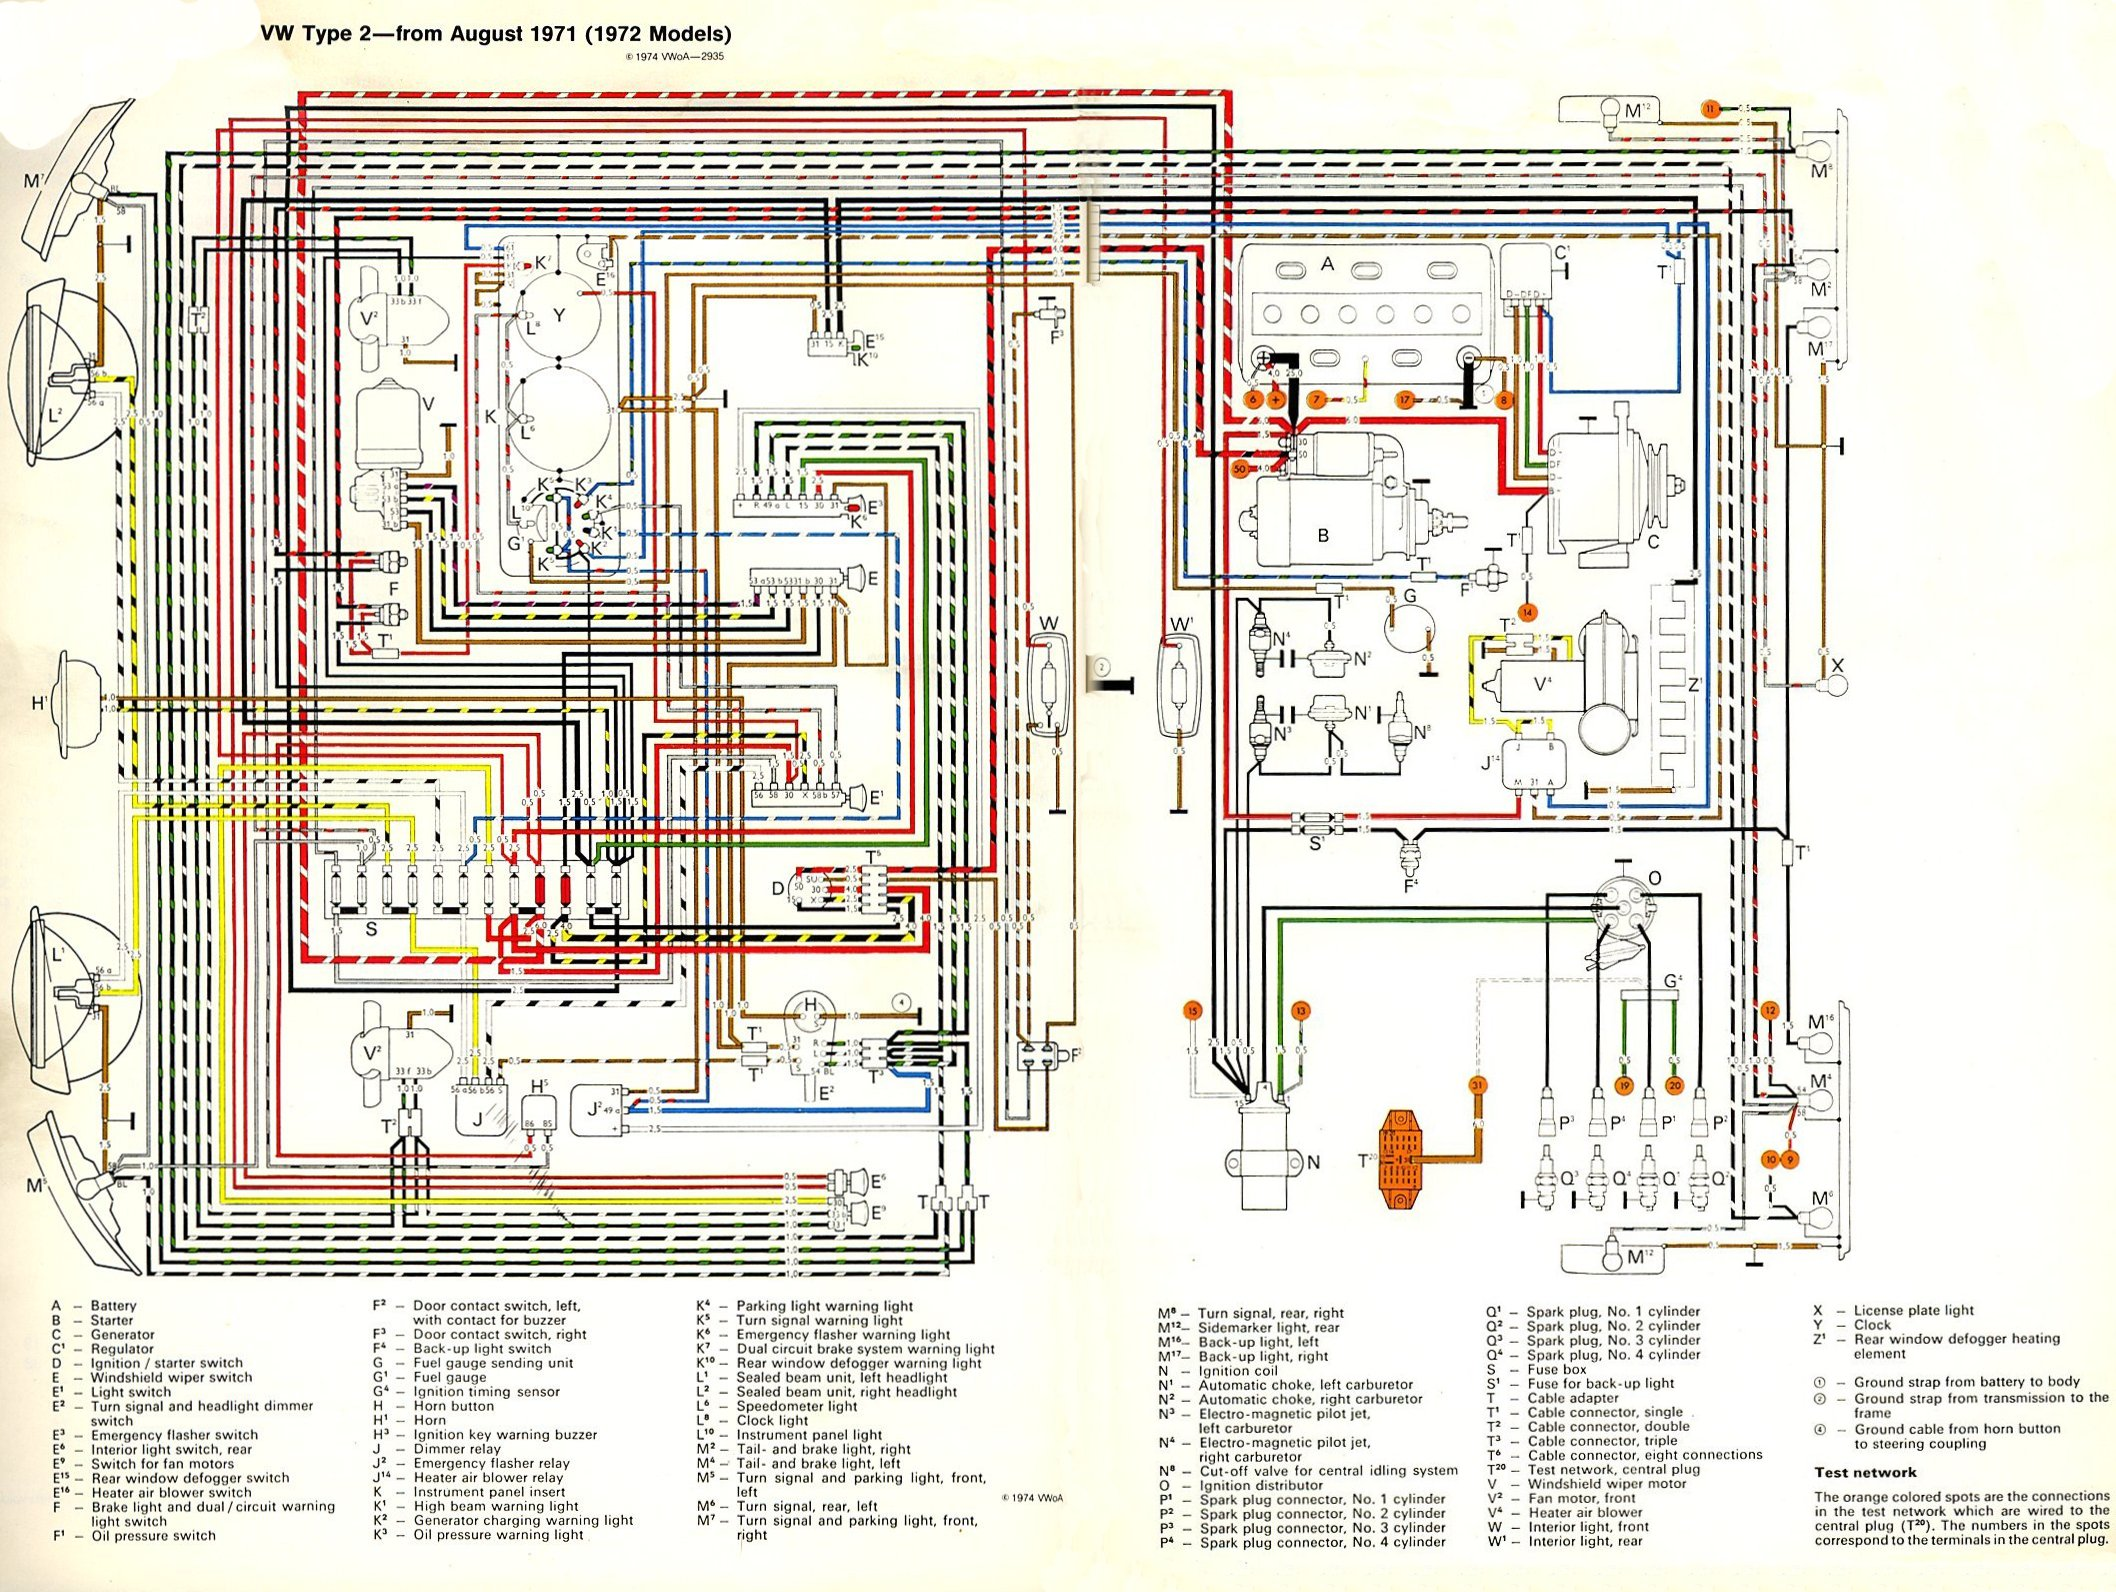 bus_1972_wiring 1972 corvette wiring diagram 1972 corvette ac wiring diagram Wiring Harness Diagram at sewacar.co